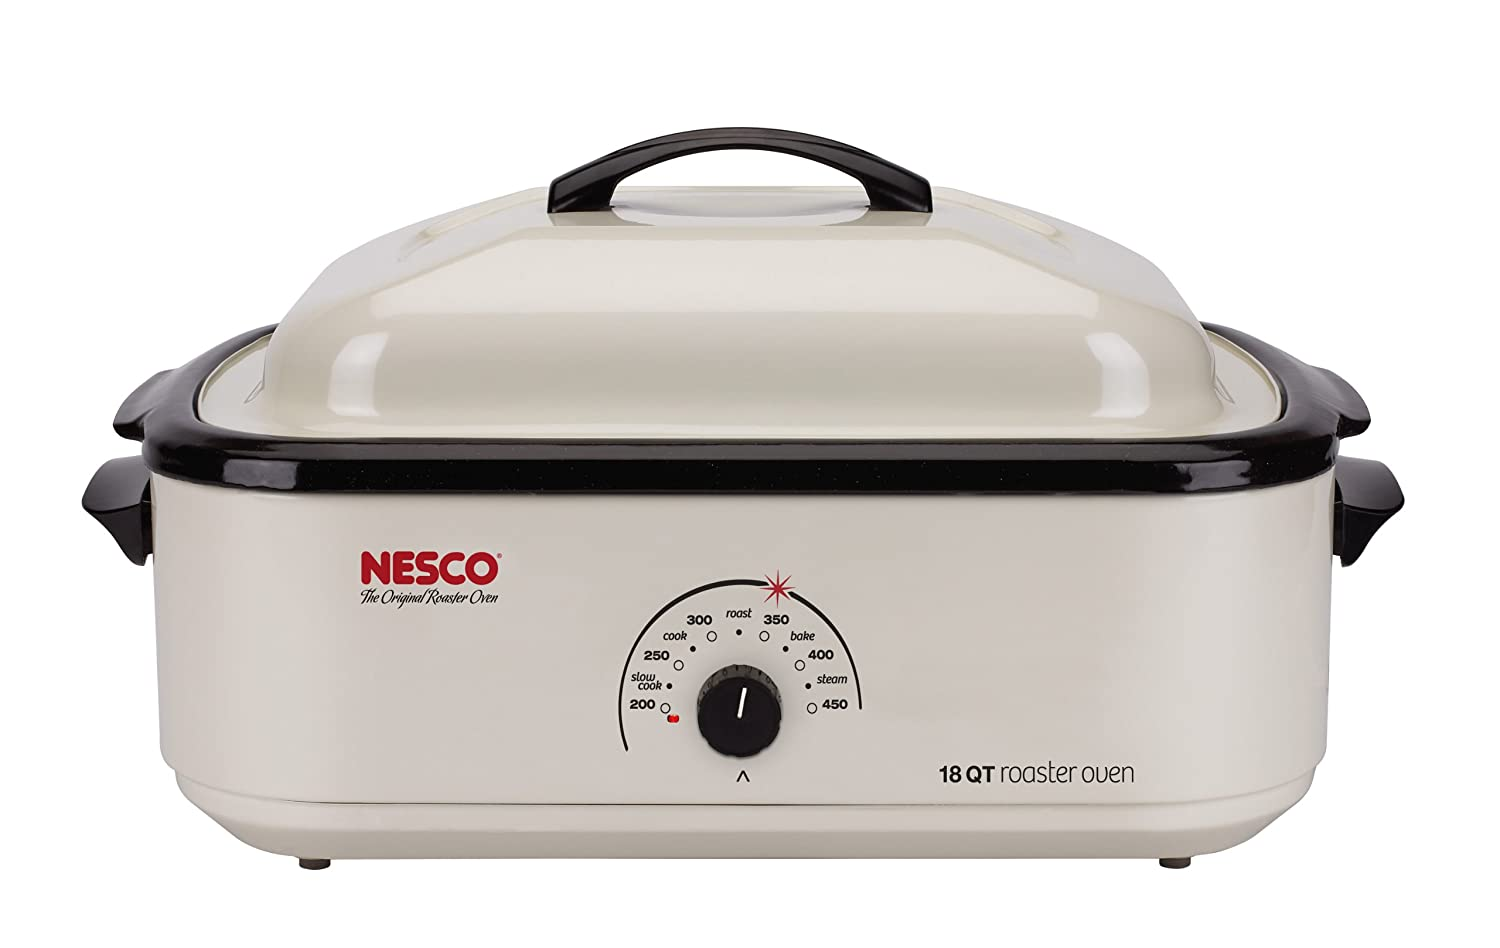 Nesco 4808-14-30 Classic Roaster Oven, 18-Quart, Non-stick Cookwell, Ivory